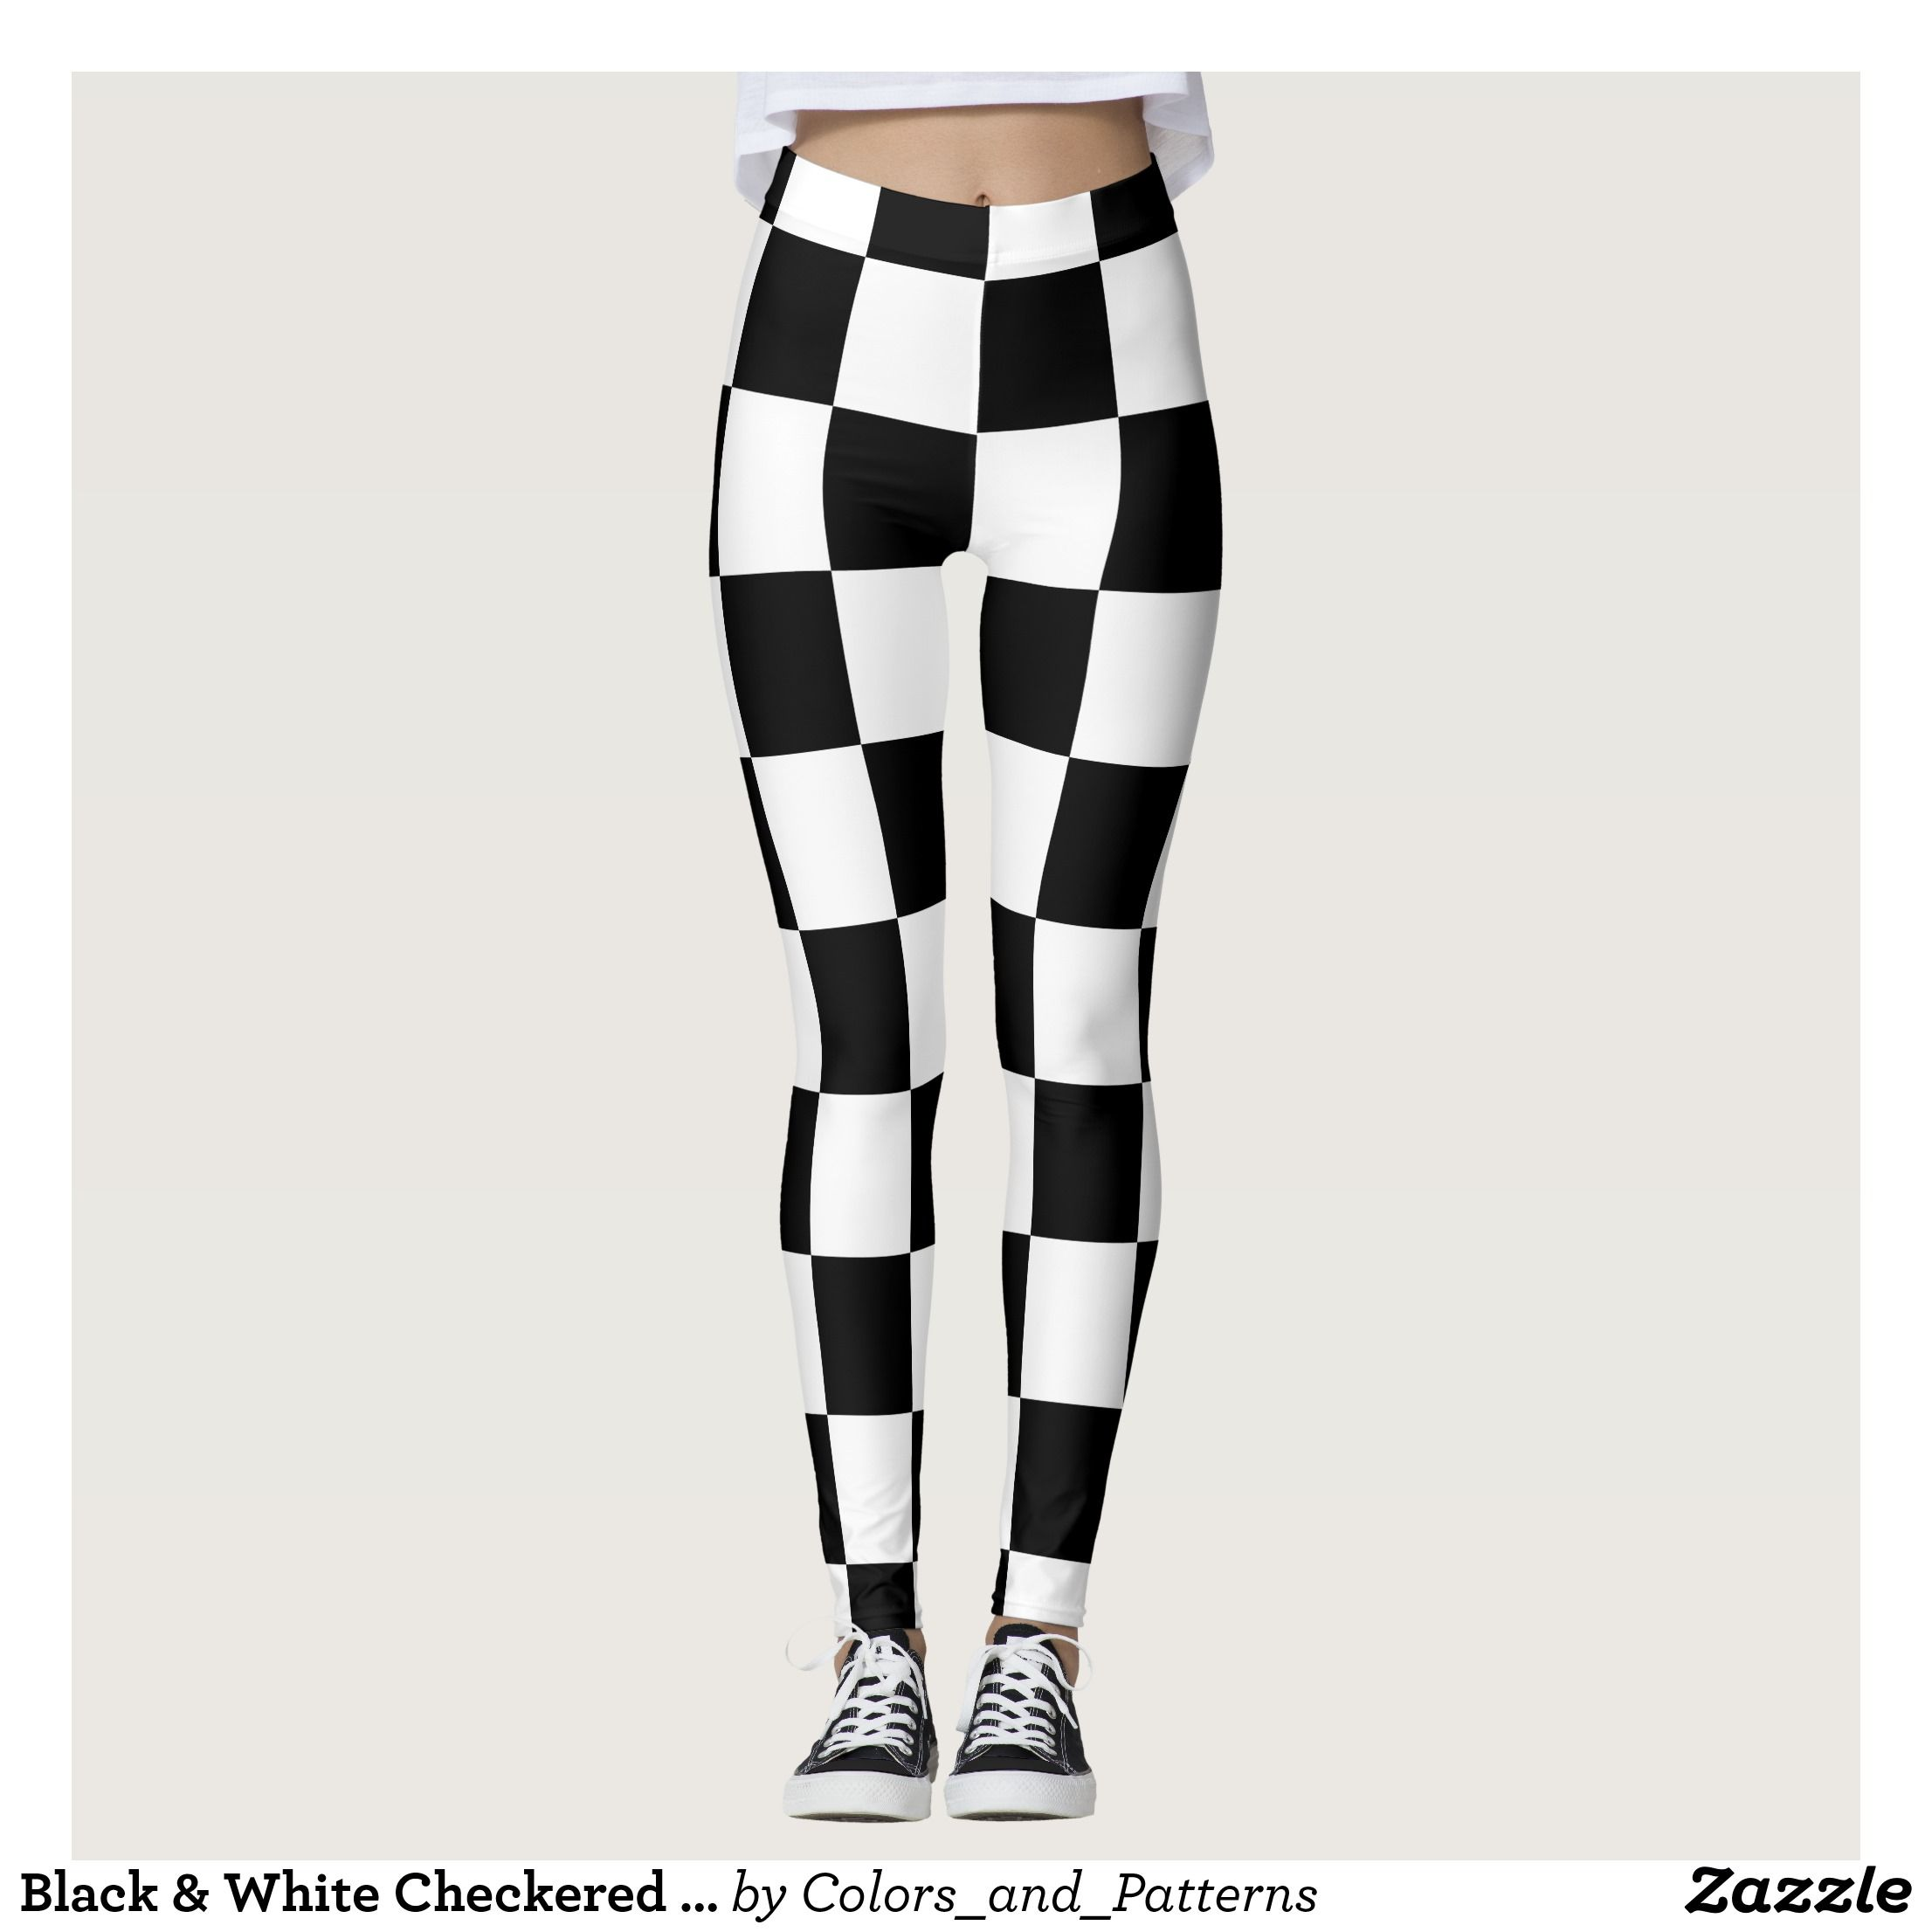 65c7ed3425ed1 Black & White Checkered Pattern Leggings : Beautiful #Yoga Pants -  #Exercise Leggings and #Running Tights - Health and Training Inspiration -  Clothing for ...